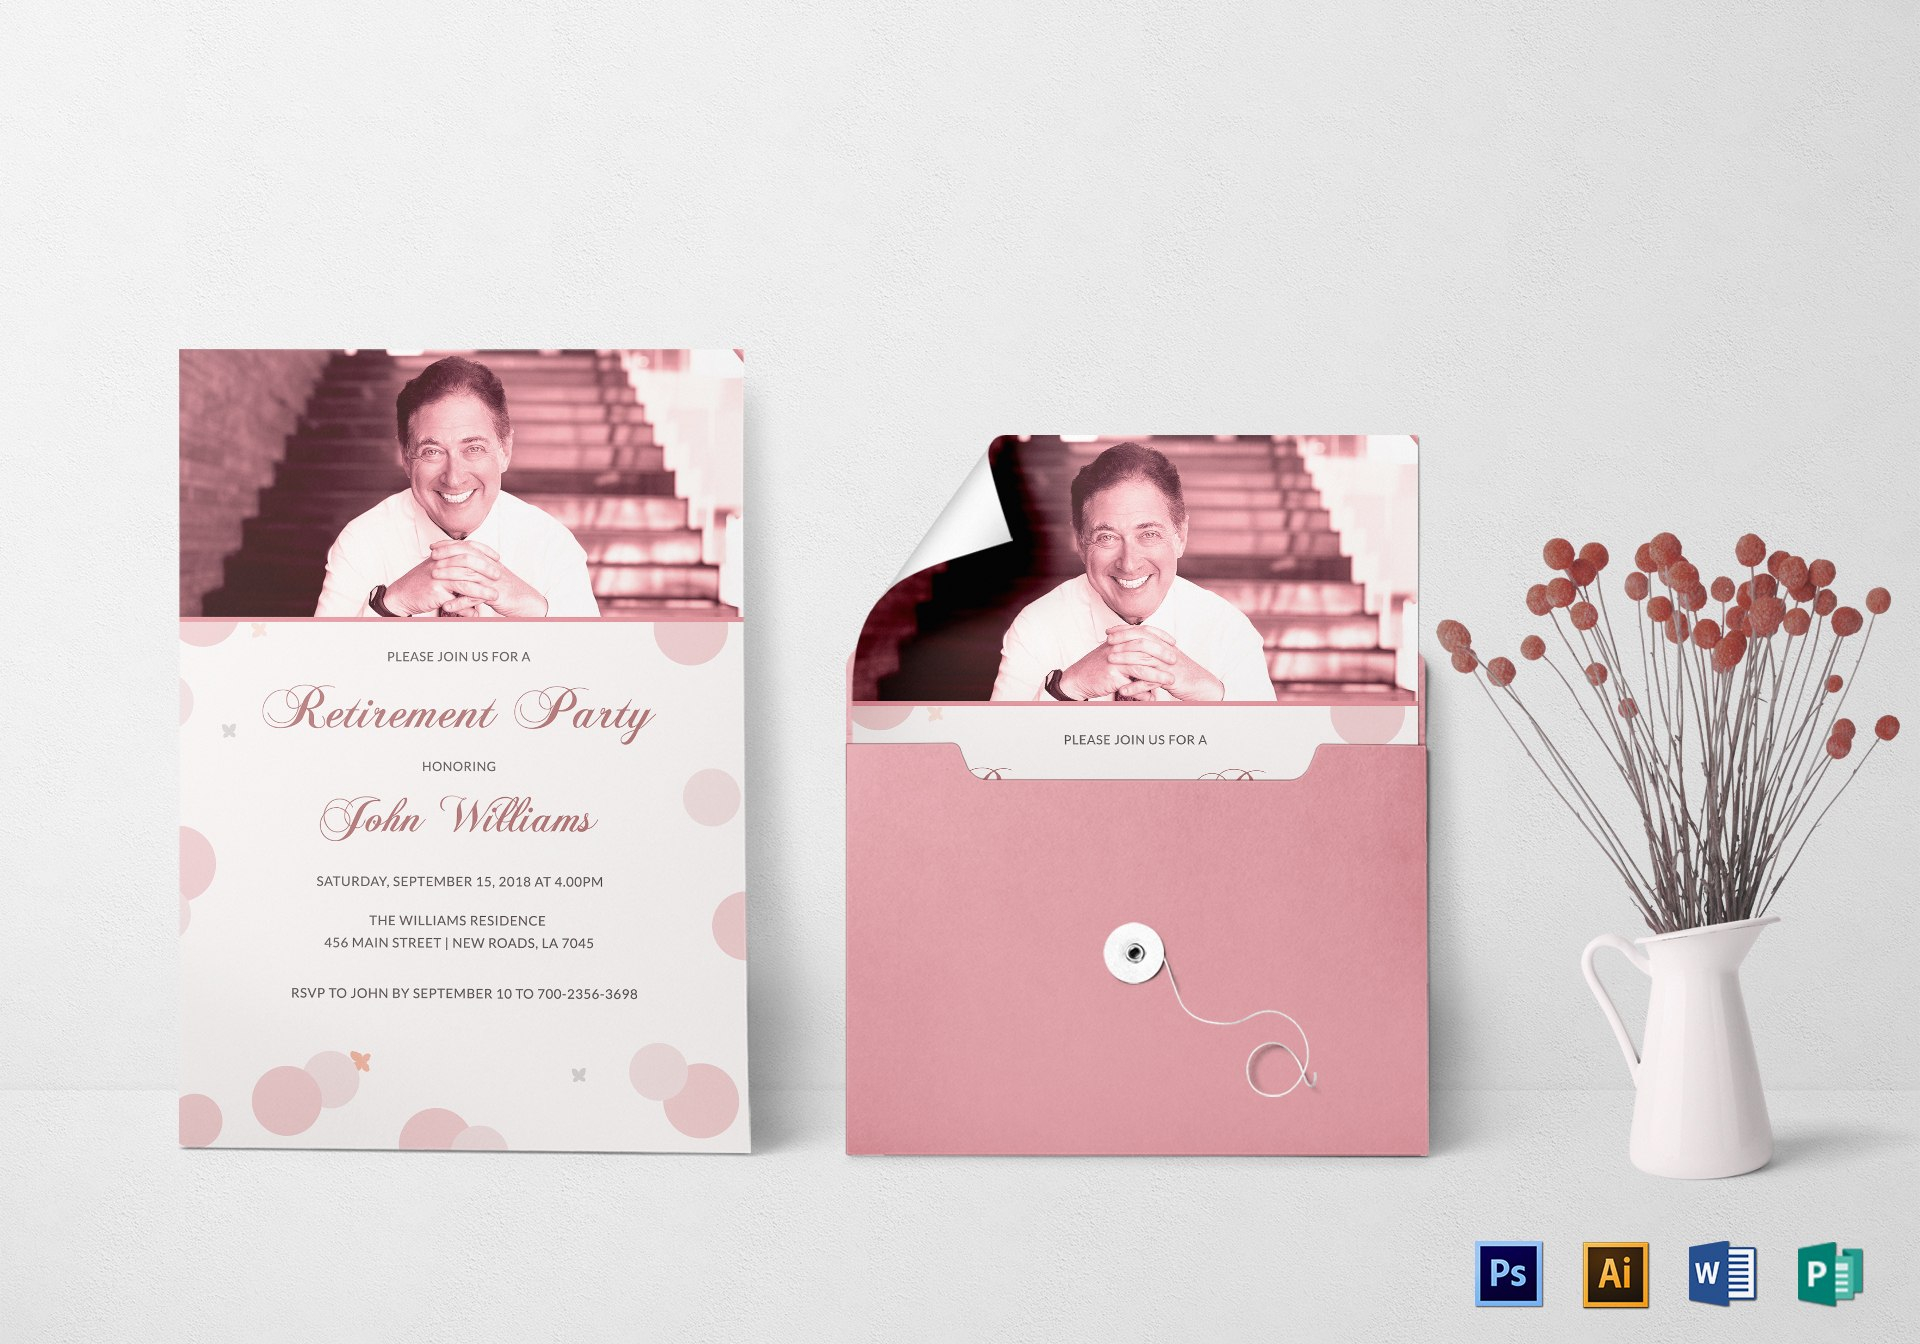 Honored Retirement Party Invitation Card Design Template In Psd Intended For Retirement Card Template